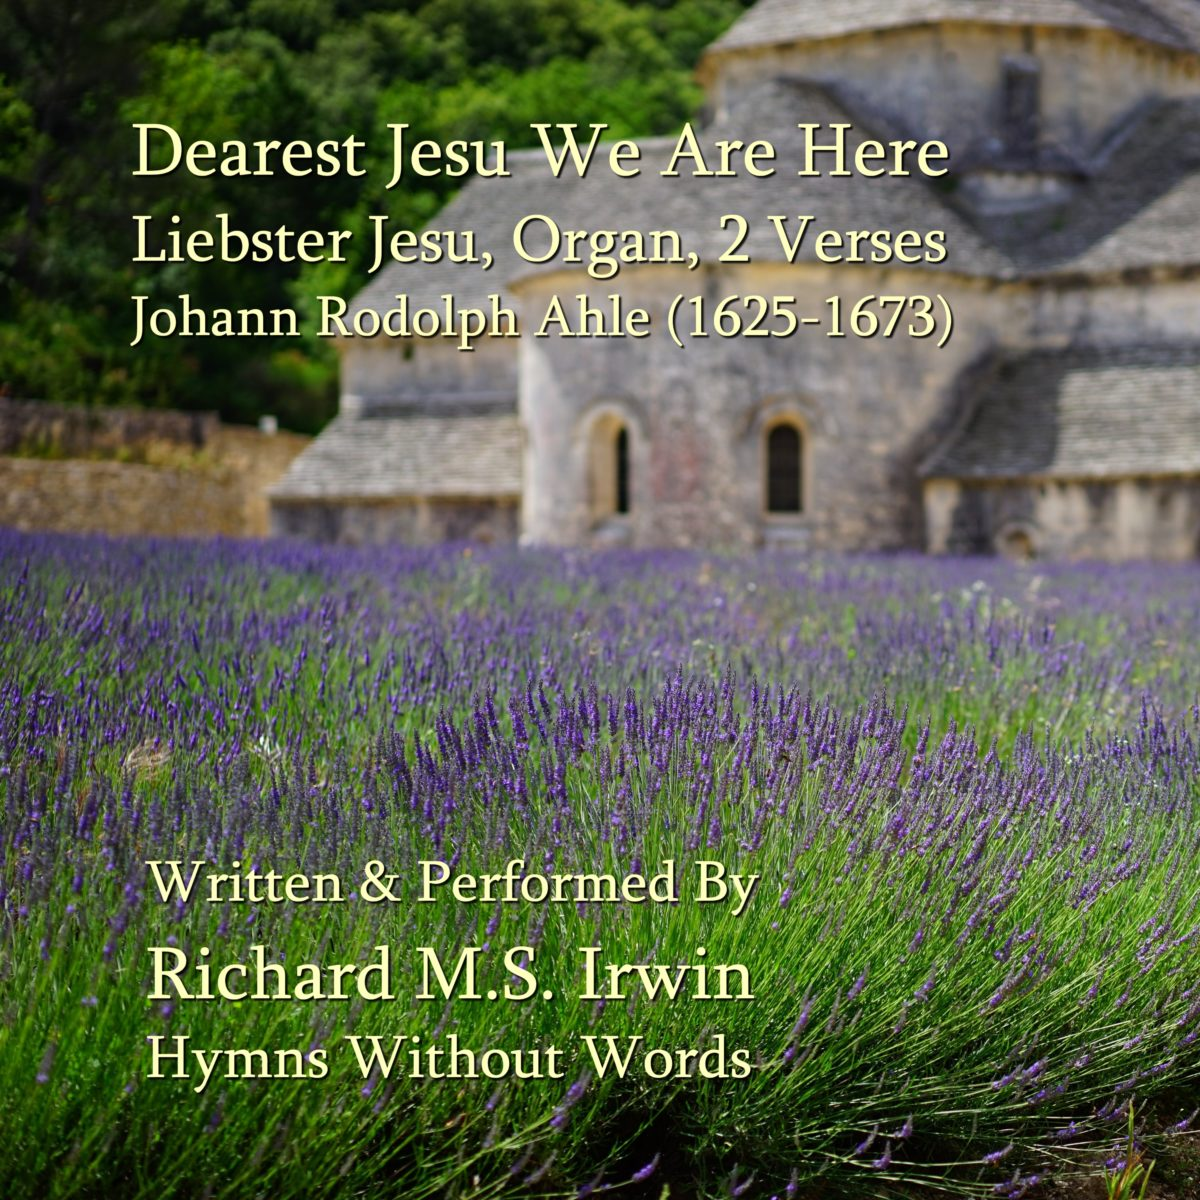 Dearest Jesu We Are Here (Liebster Jesu, Organ, 2 Verses)